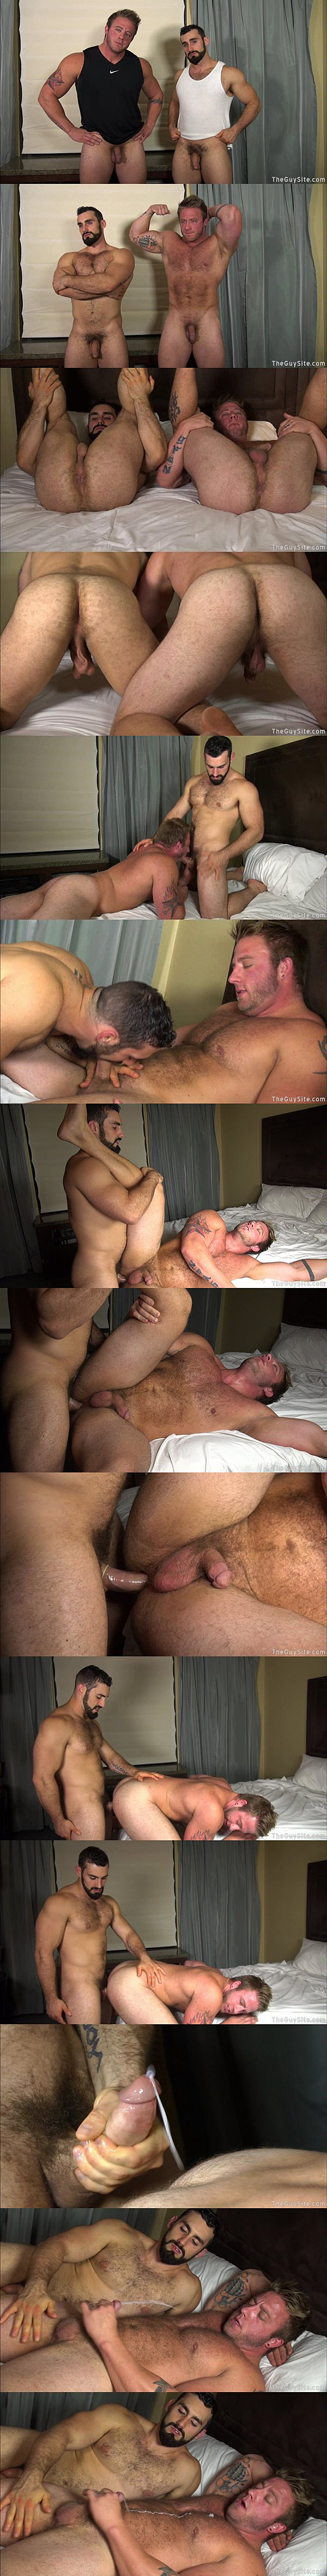 Macho Jaxton Wheeler fucks hot muscle hunk Aaron Bruiser's tight virgin ass in Popping Bruiser's Cherry at Theguysite 02